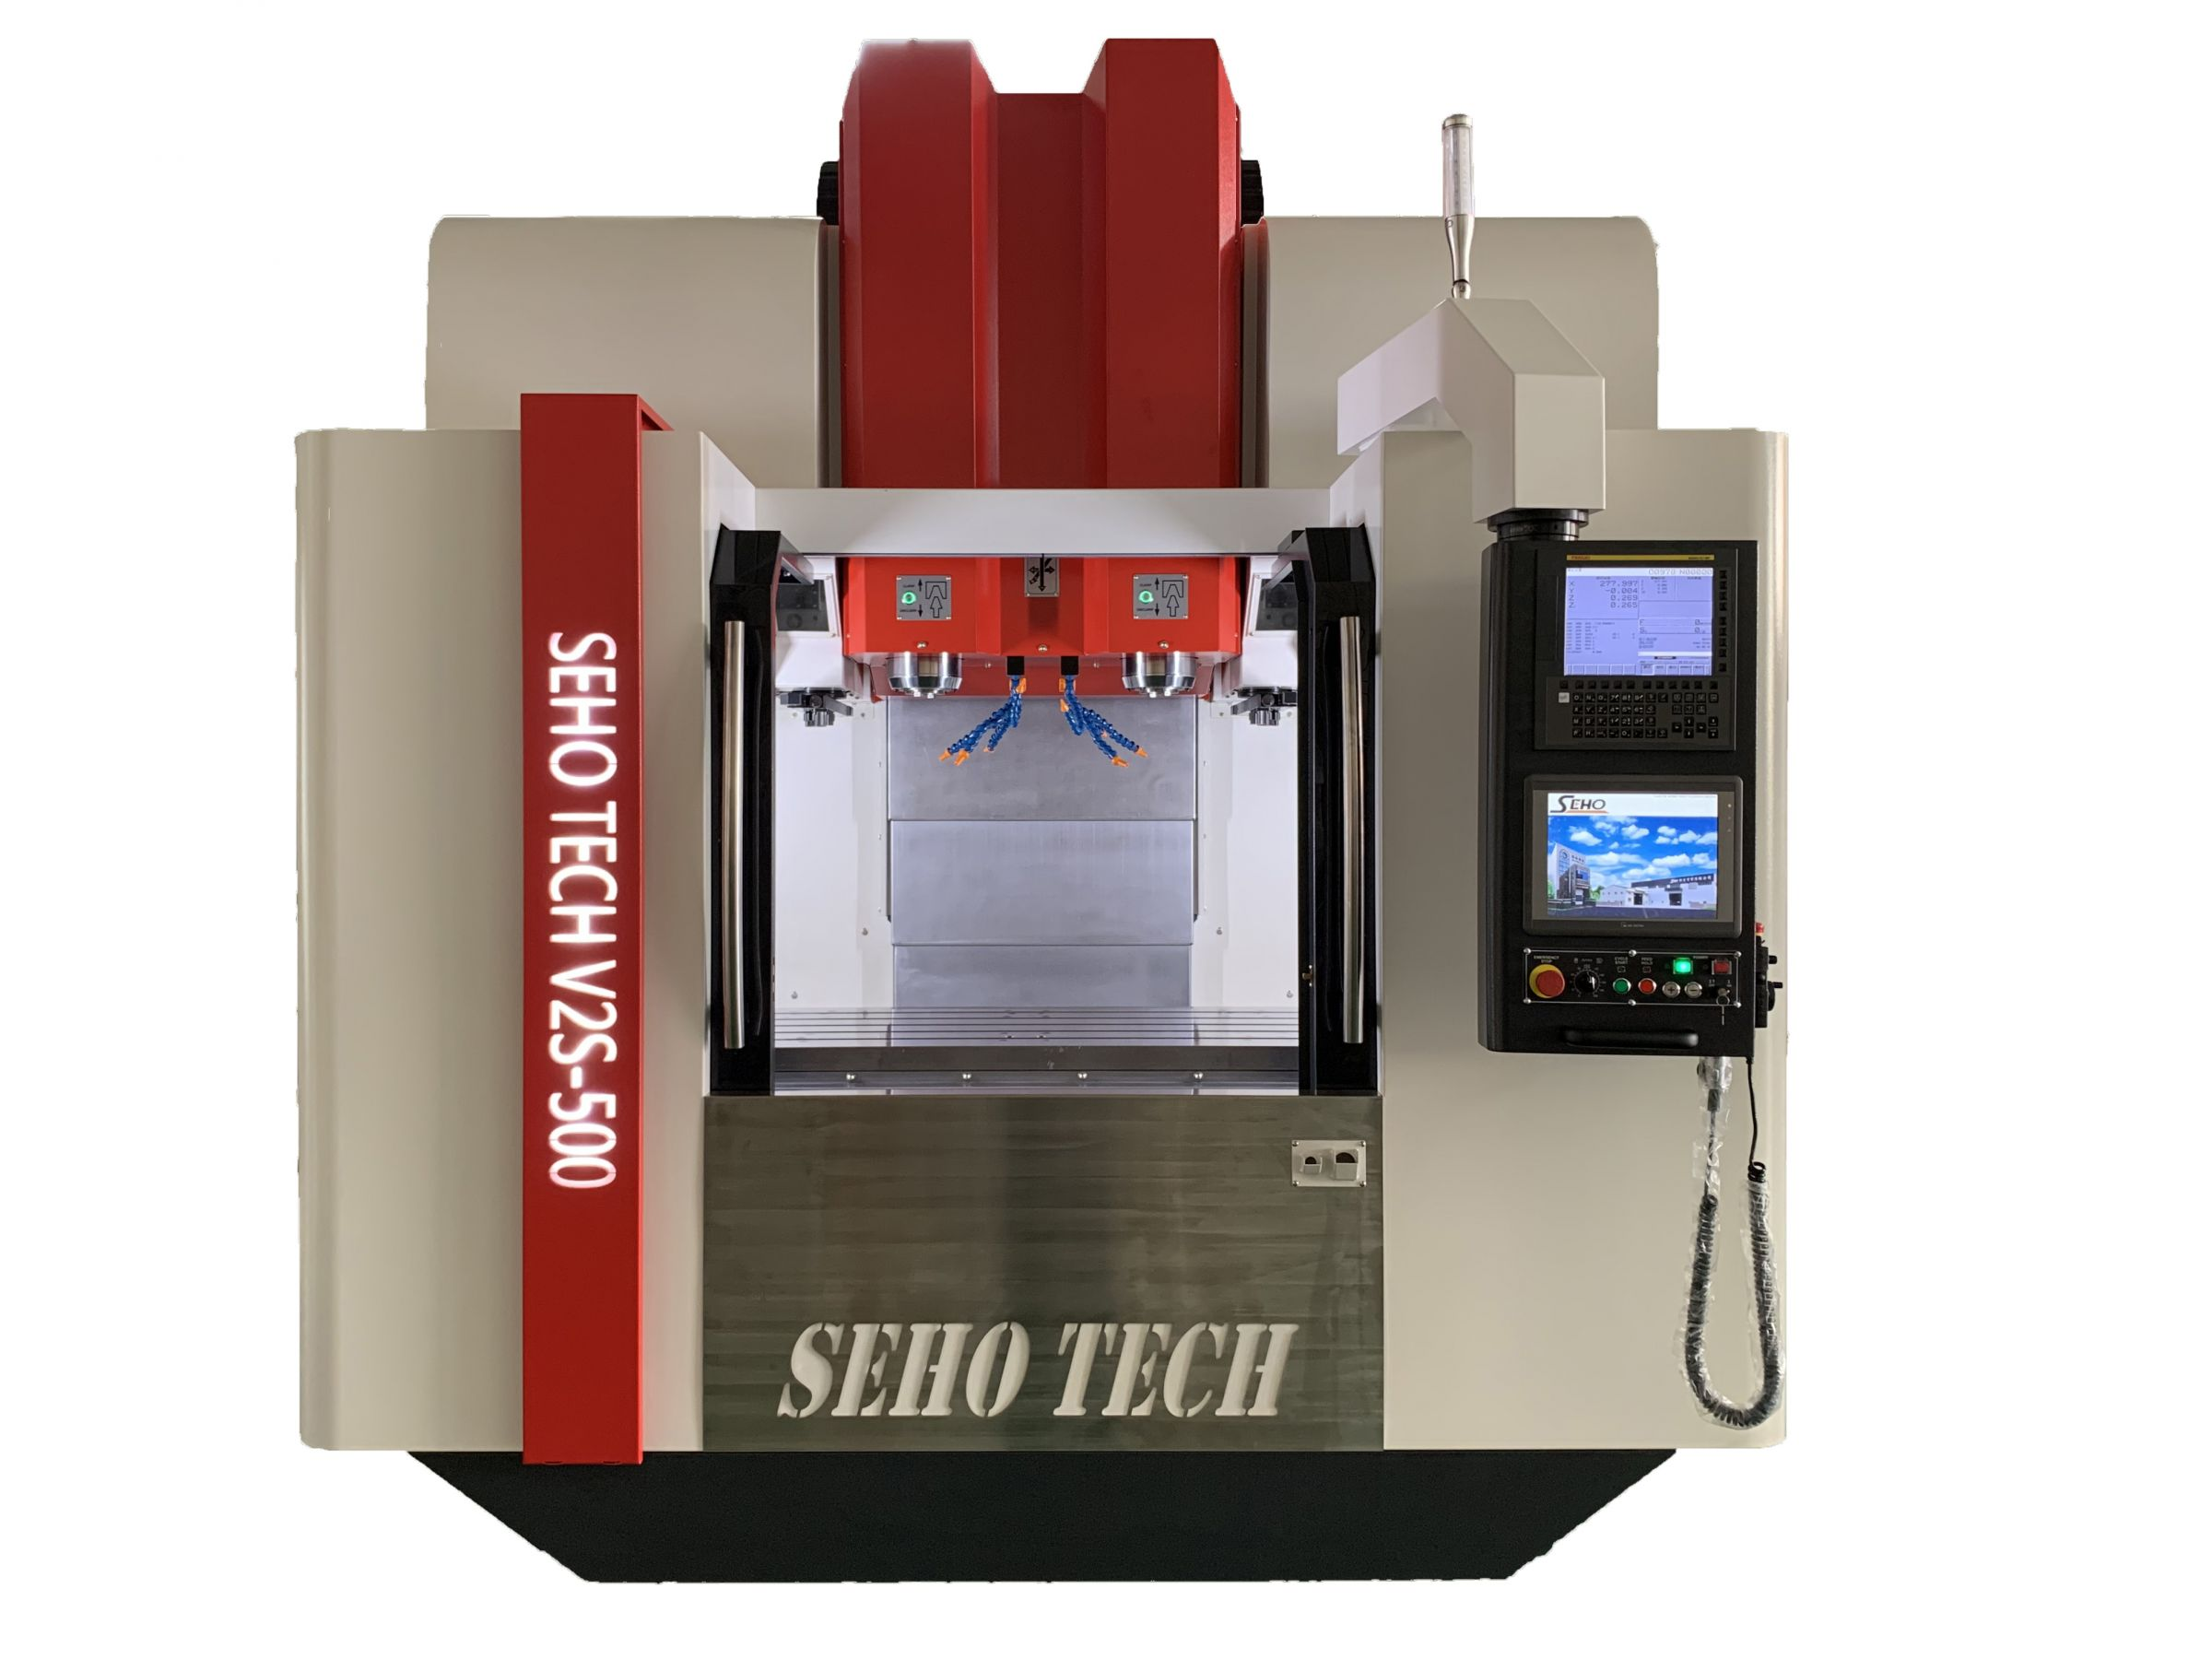 SEHO TECH Double Spindle Double ATC Vertical Machining Center